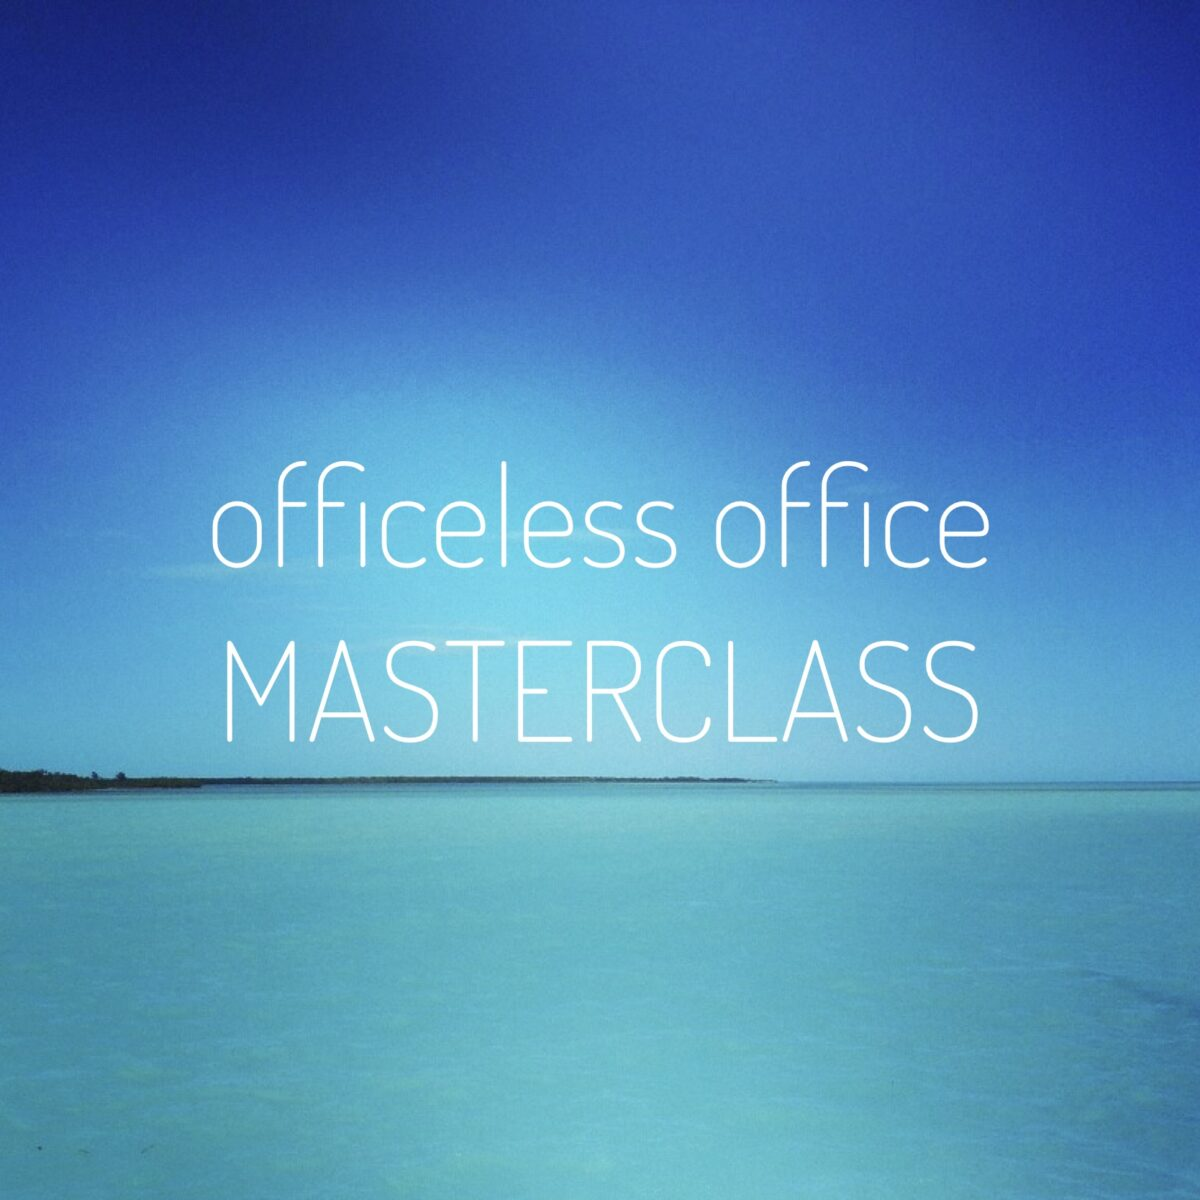 officeless office masterclass